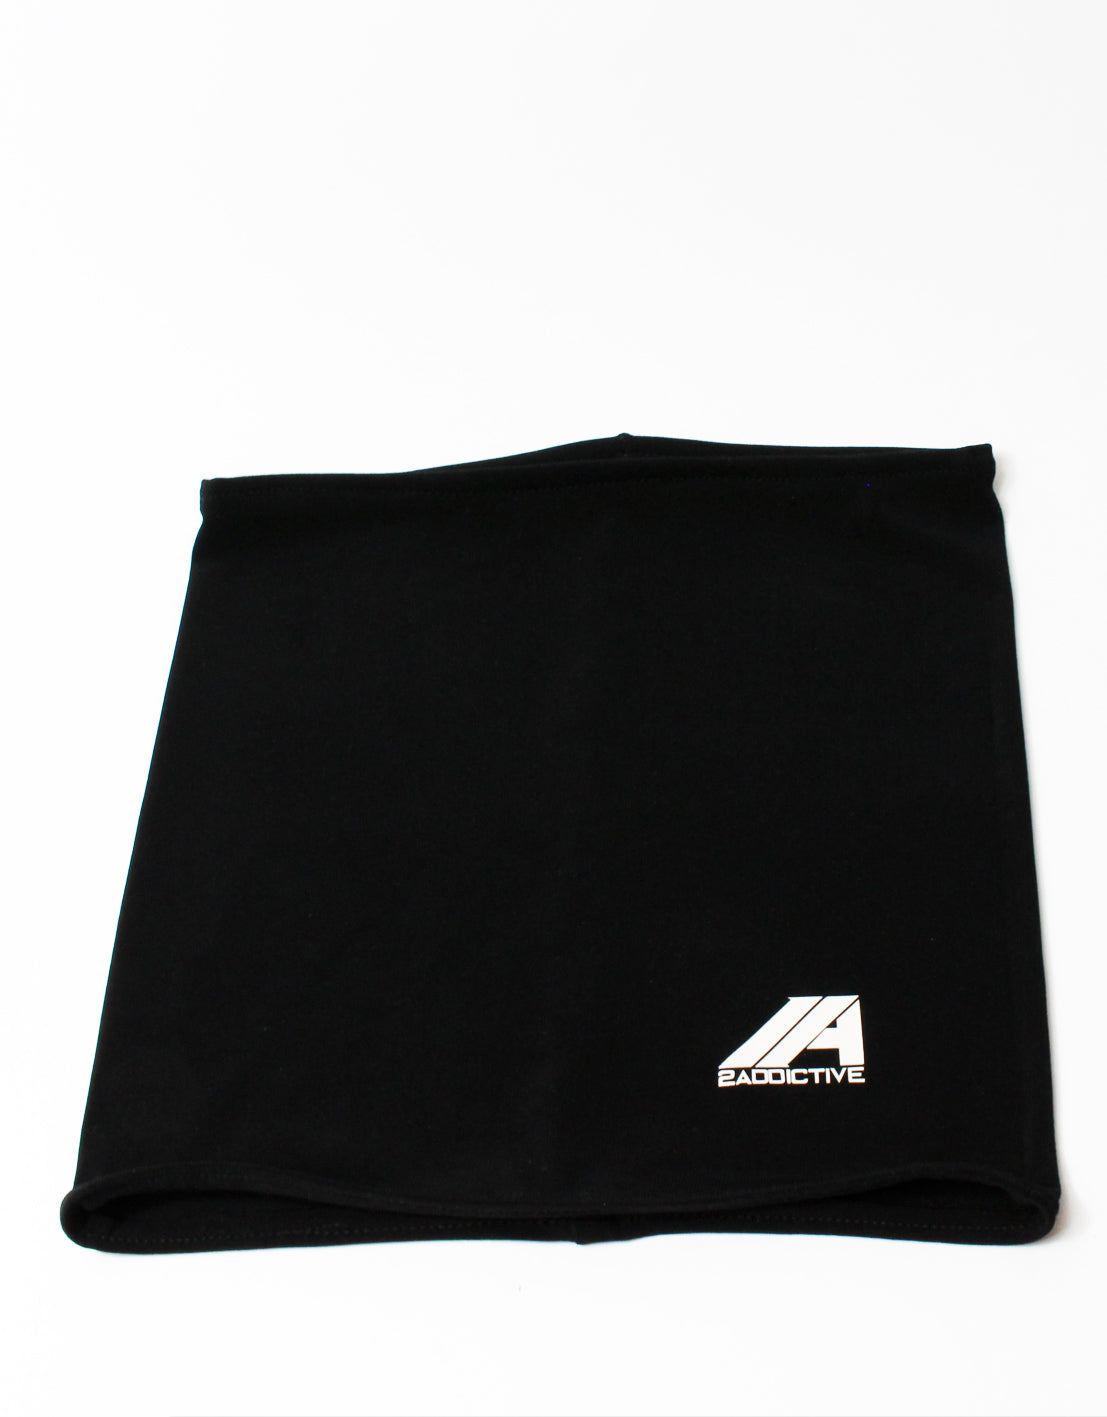 NEW Light Weight Neck Warmer/ Face covering  - Black - 2 Addictive